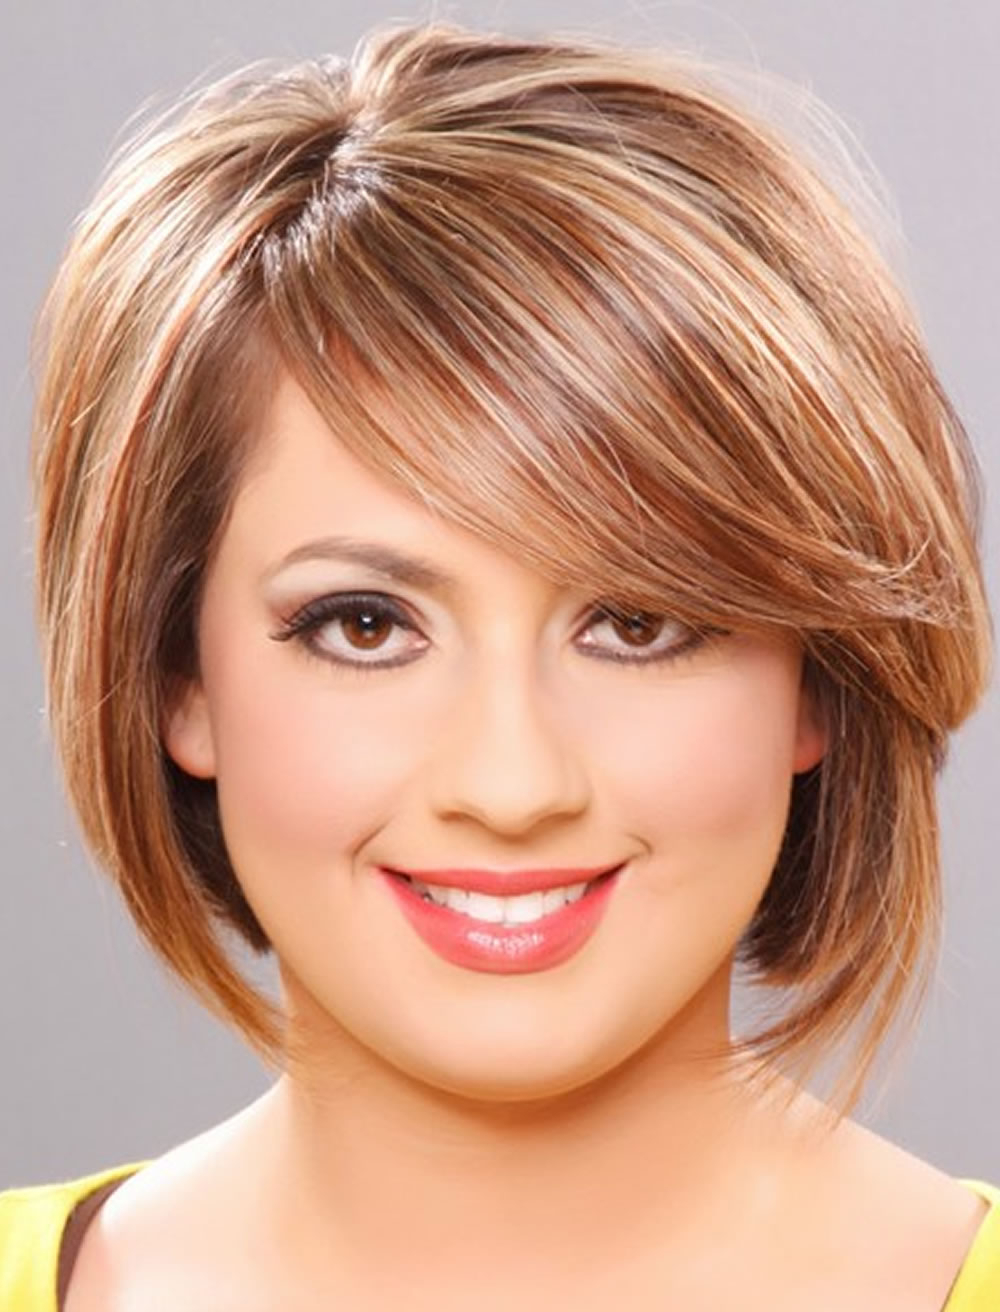 Short Haircuts For Round Face Thin Hair Ideas For 2018 – Page 3 Throughout Short Haircuts For Women With Round Faces (View 12 of 25)